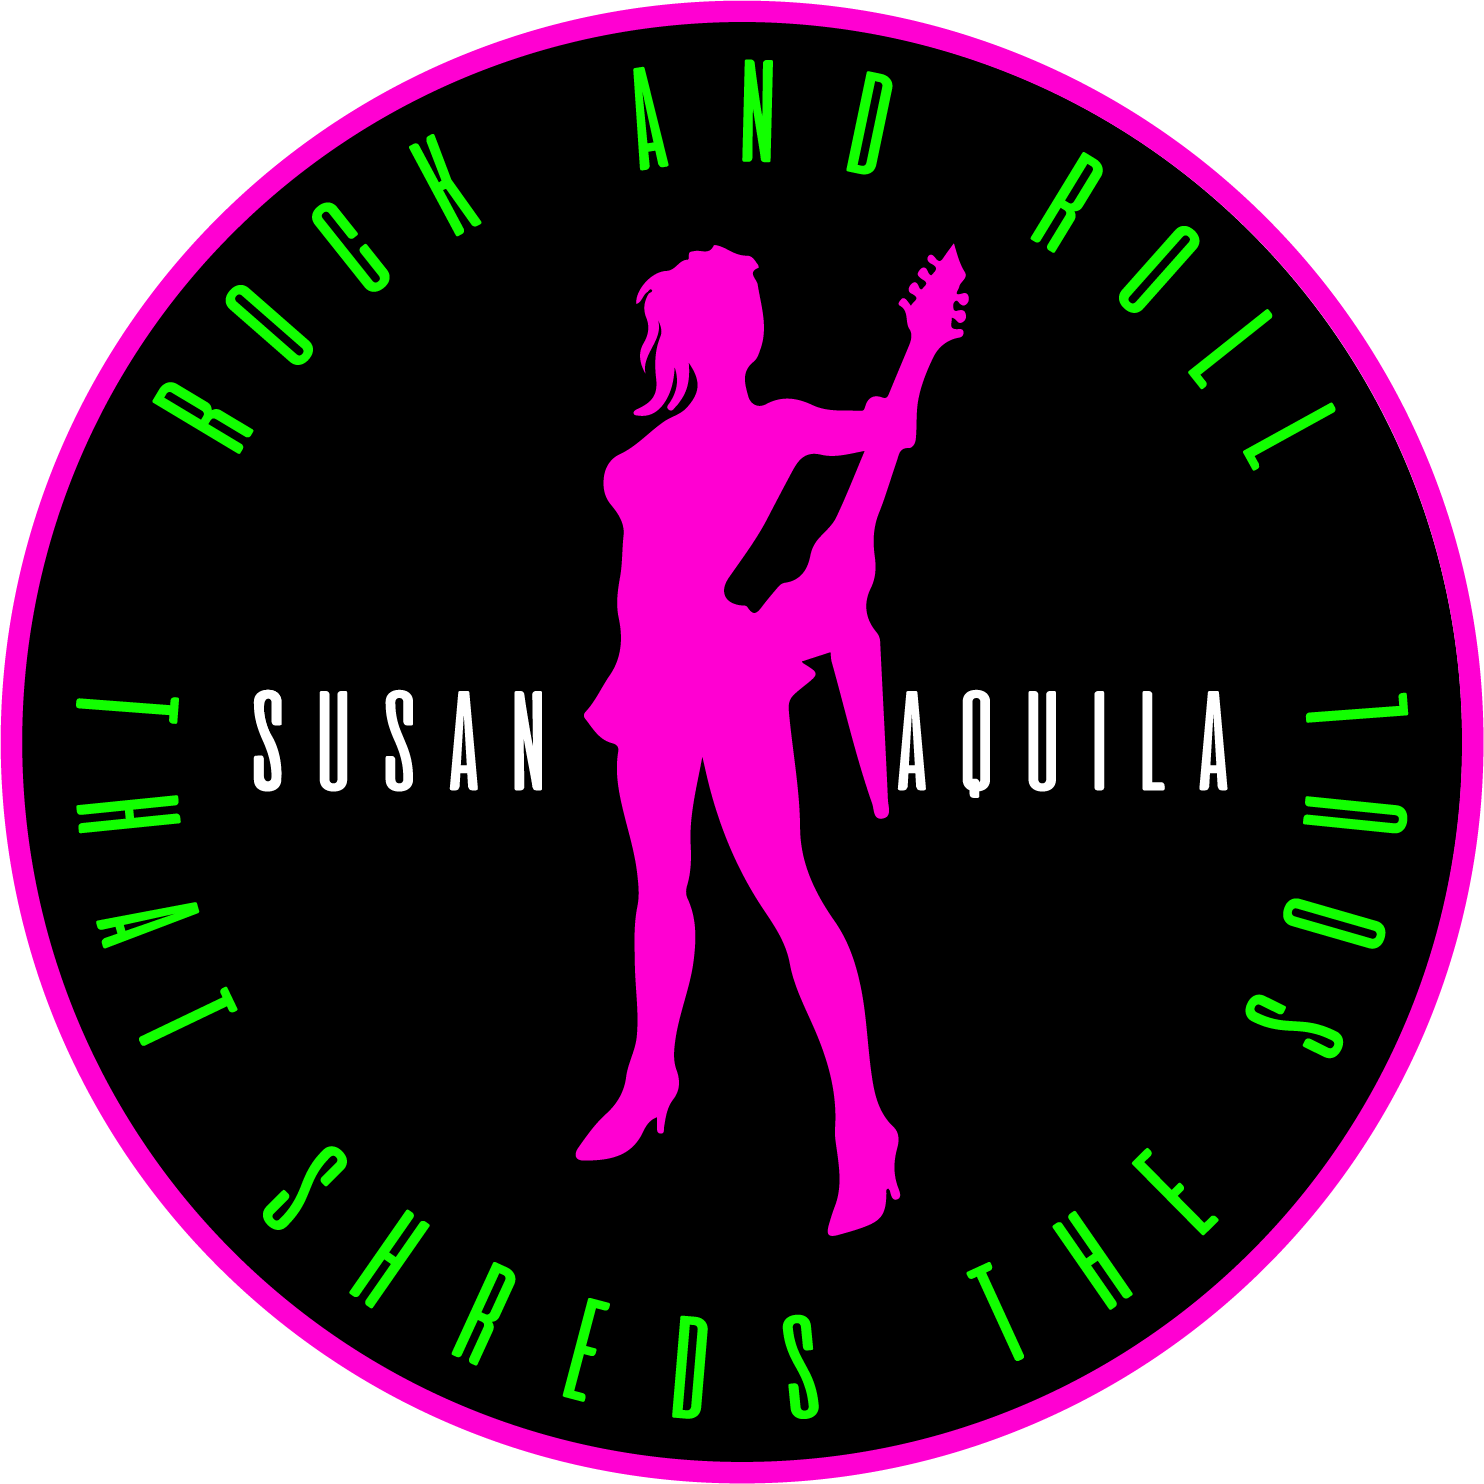 Susan Anquila Music